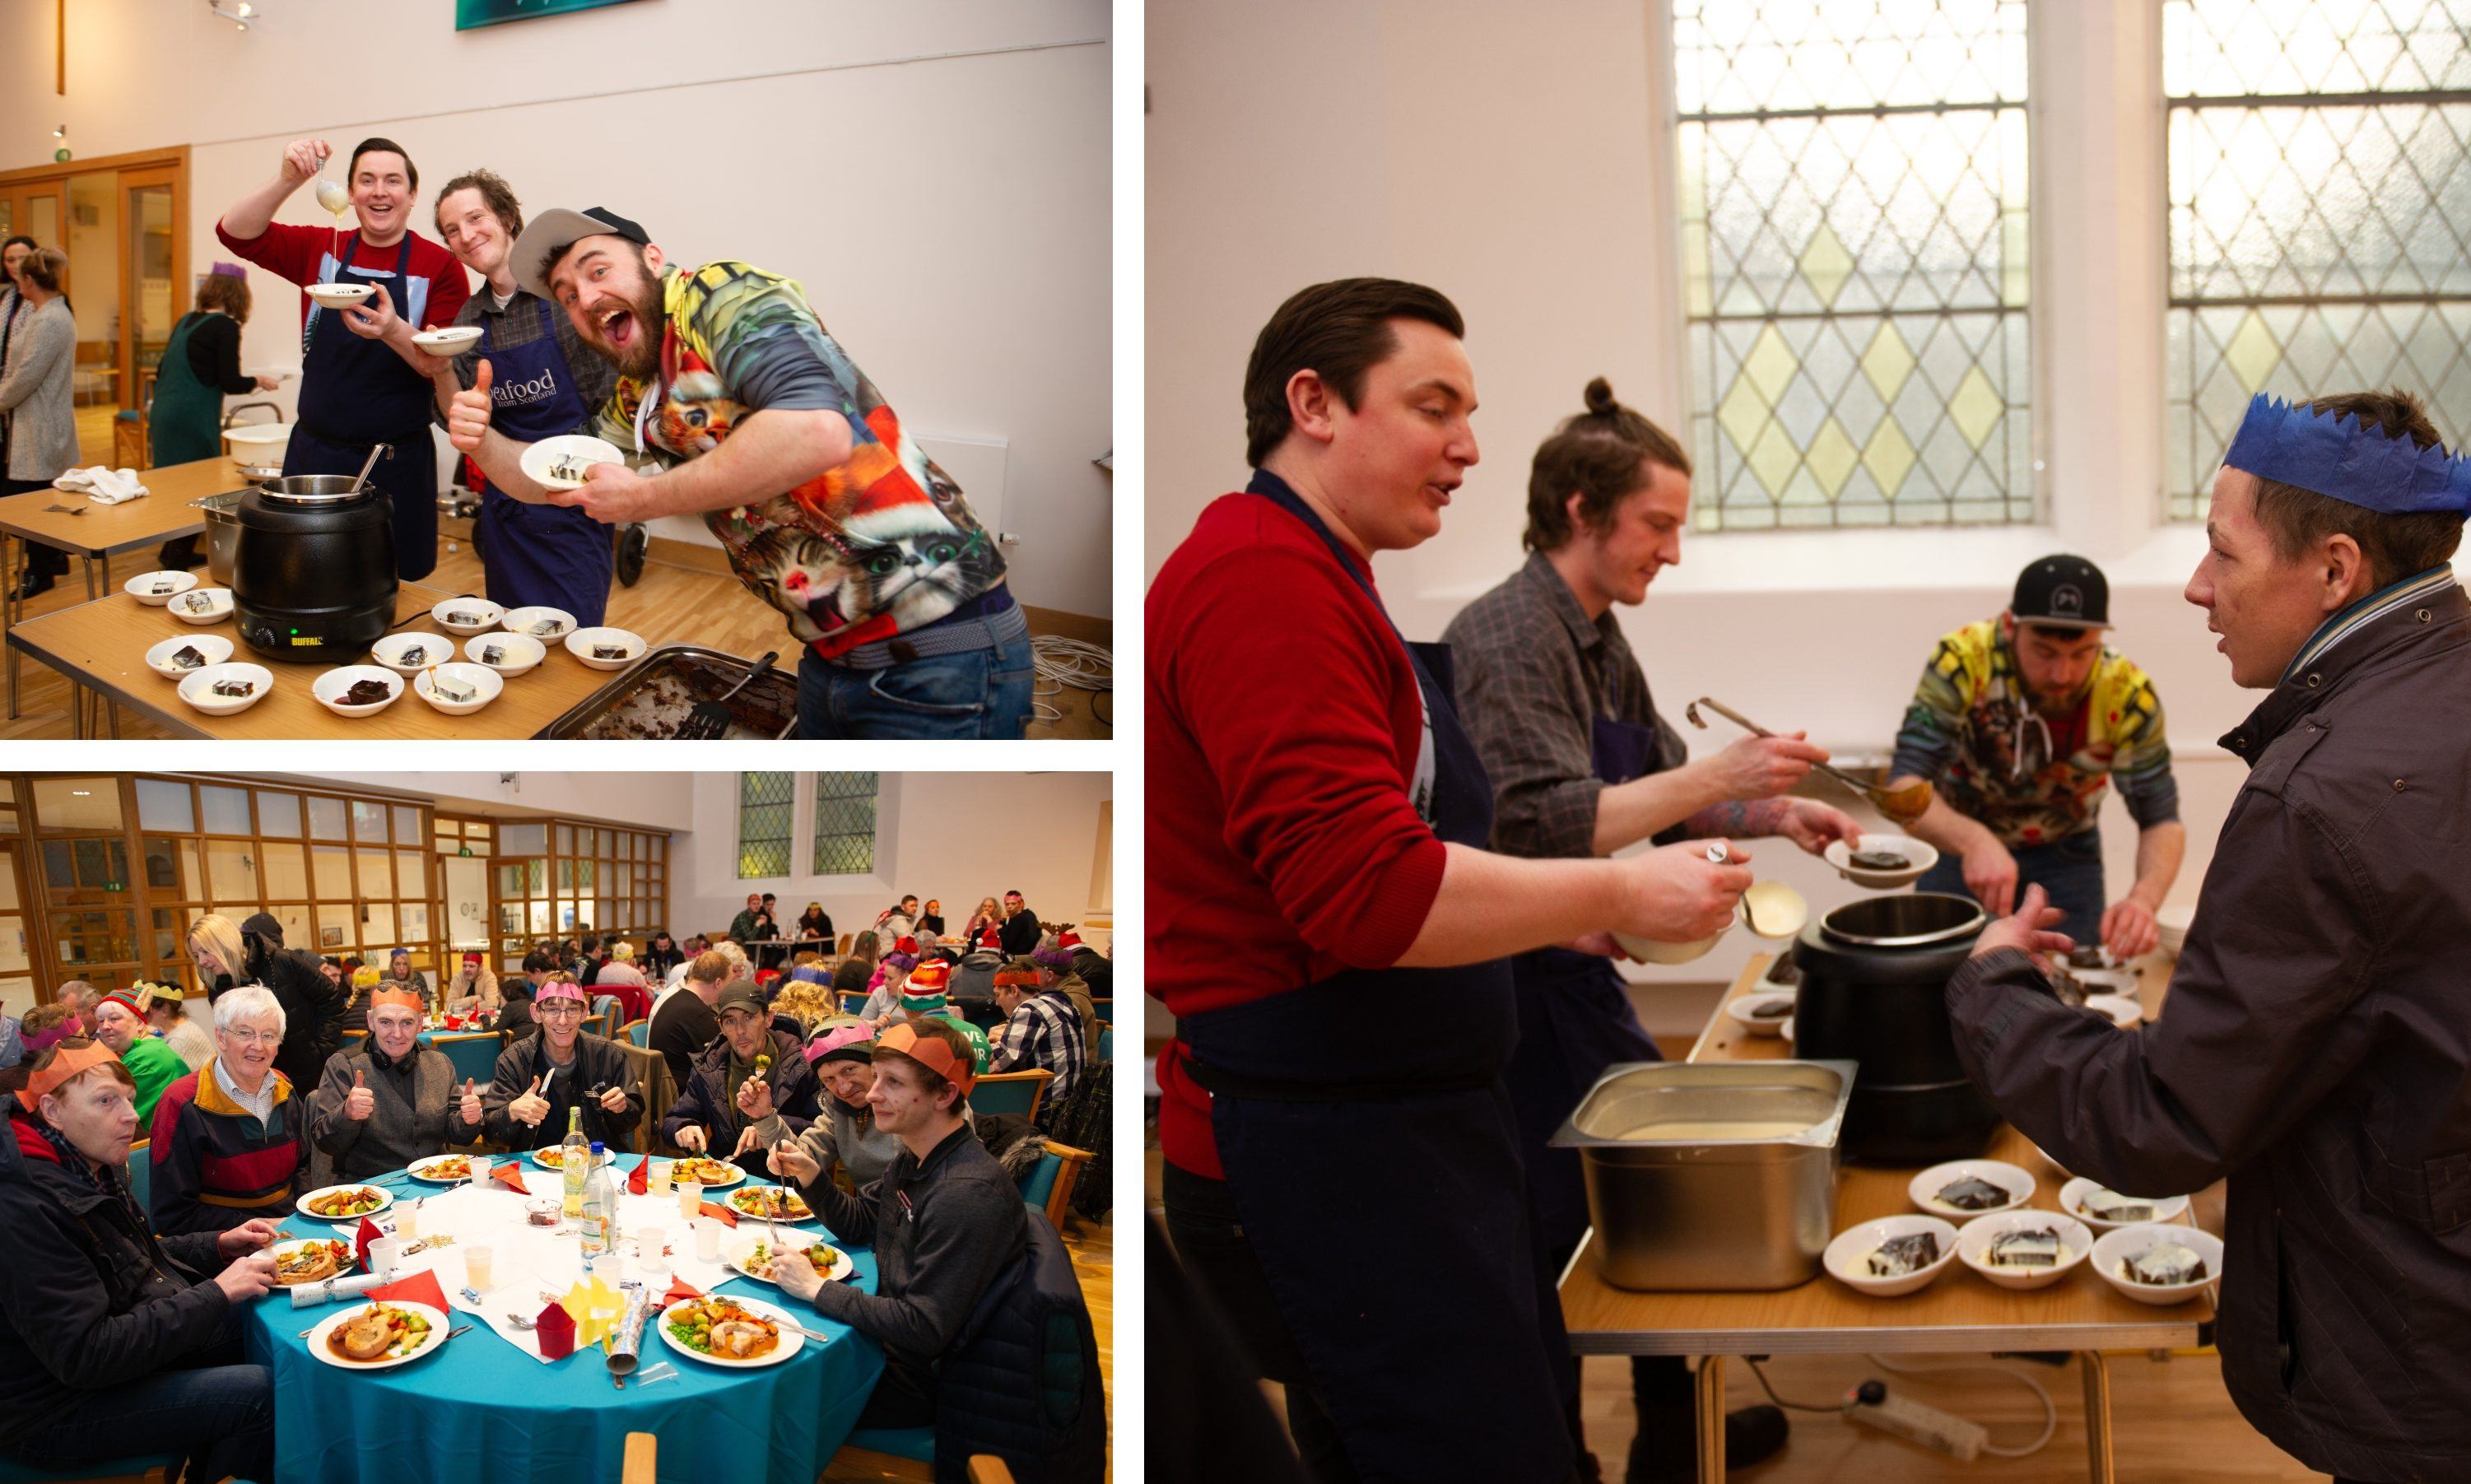 The Christmas dinner at The Steeple Church in Dundee.